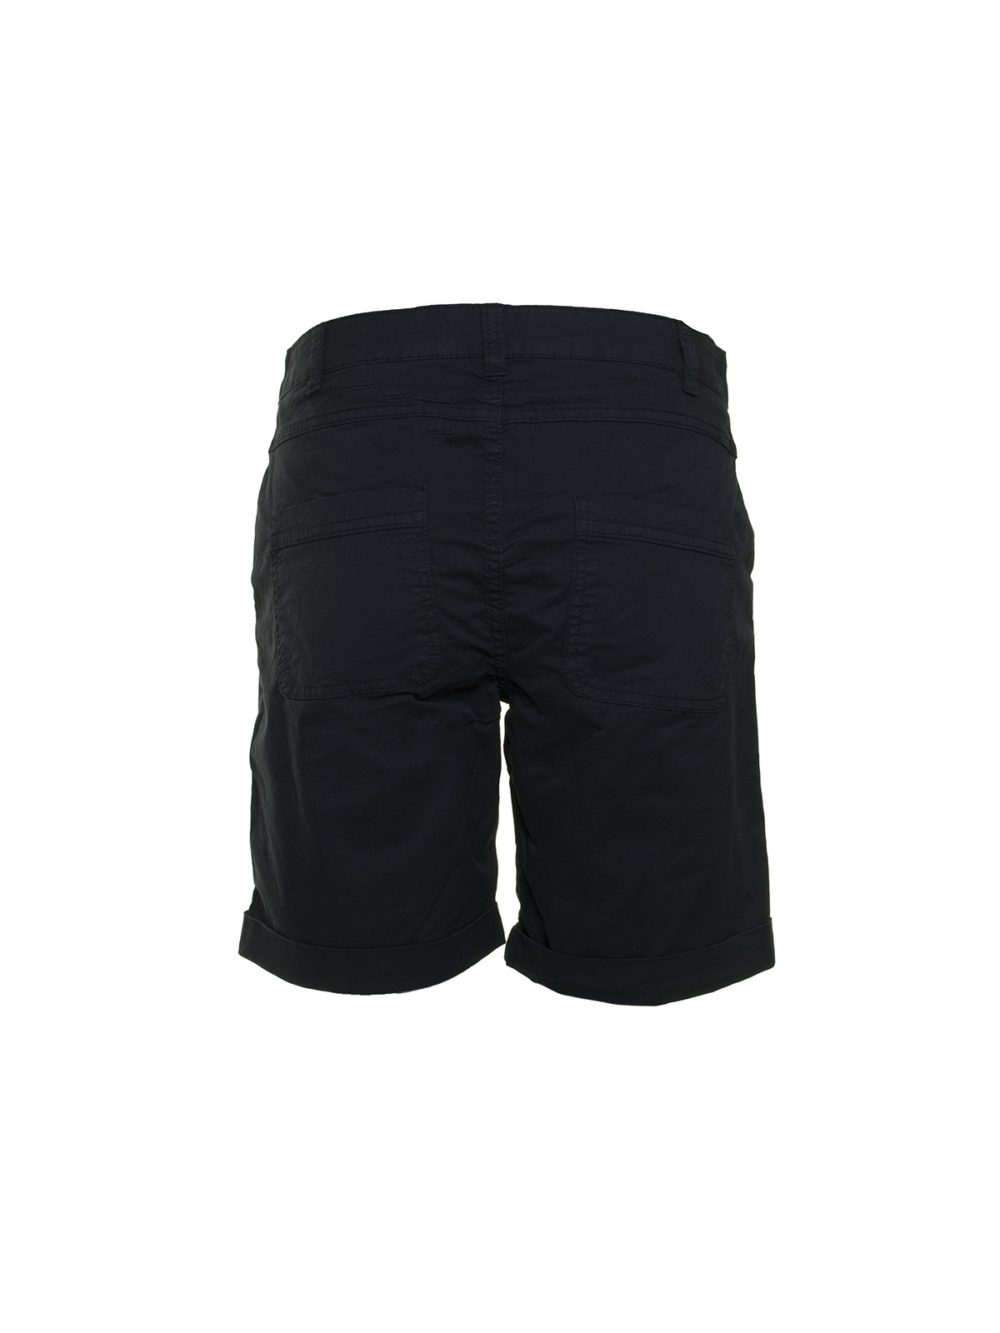 Twill Shorts Plain Lily and Me Katie Kerr Women's Clothing